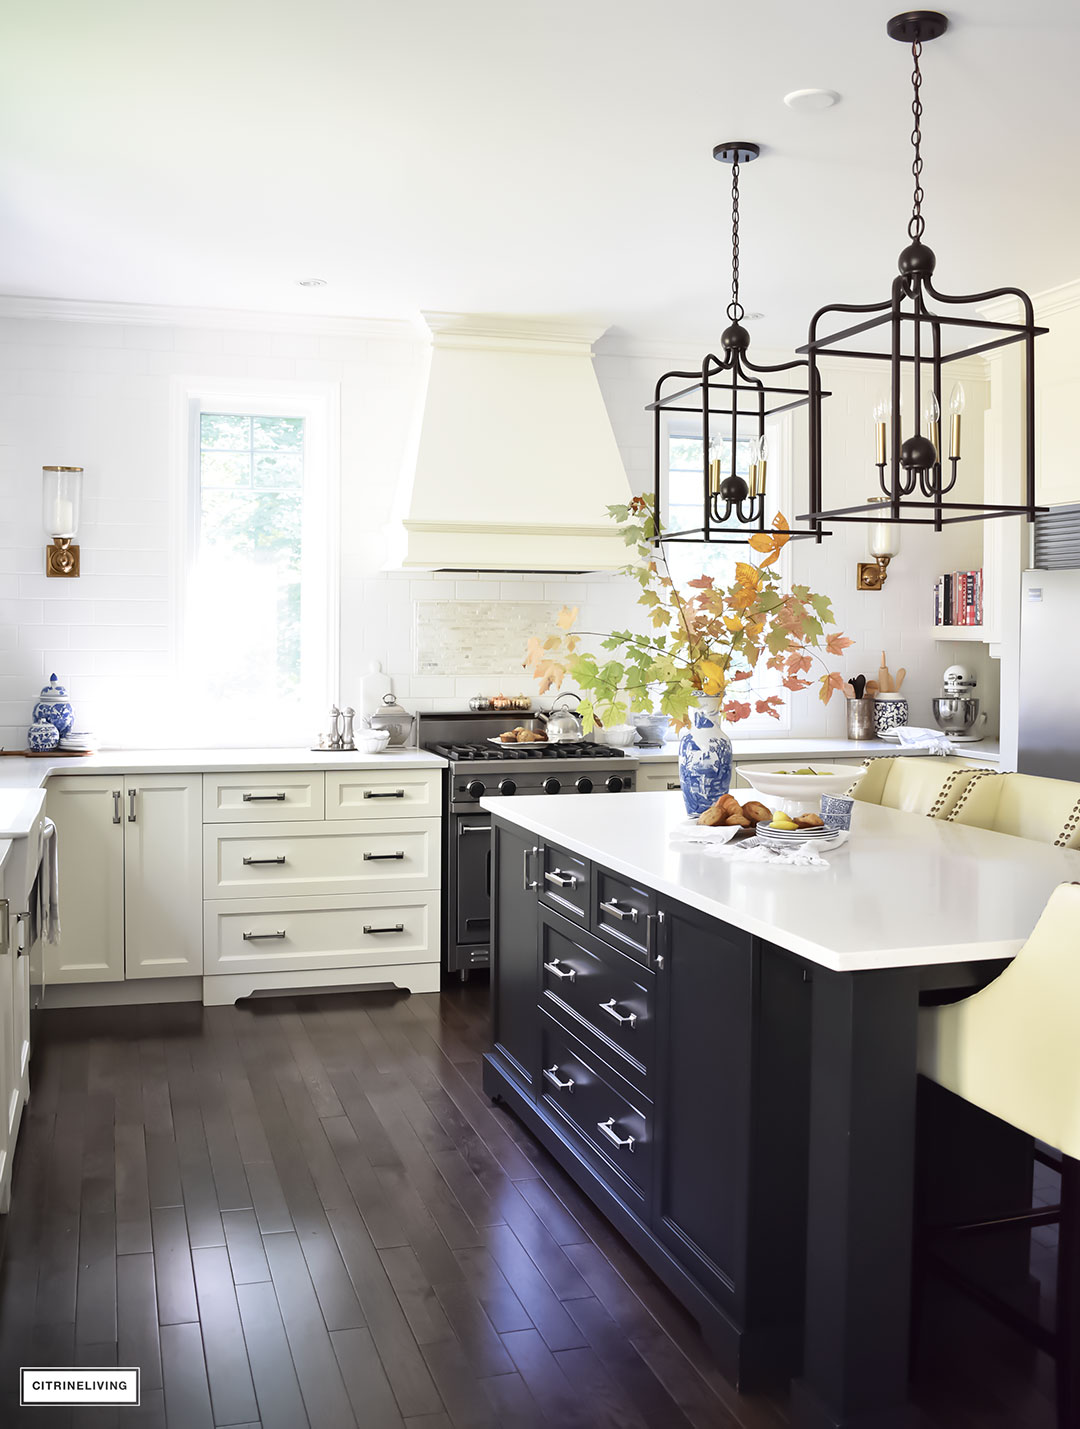 Fall Home Tour - casual elegant black and white kitchen with large black island and lantern style pendant lighting. Blue and white vases and Fall foliage.